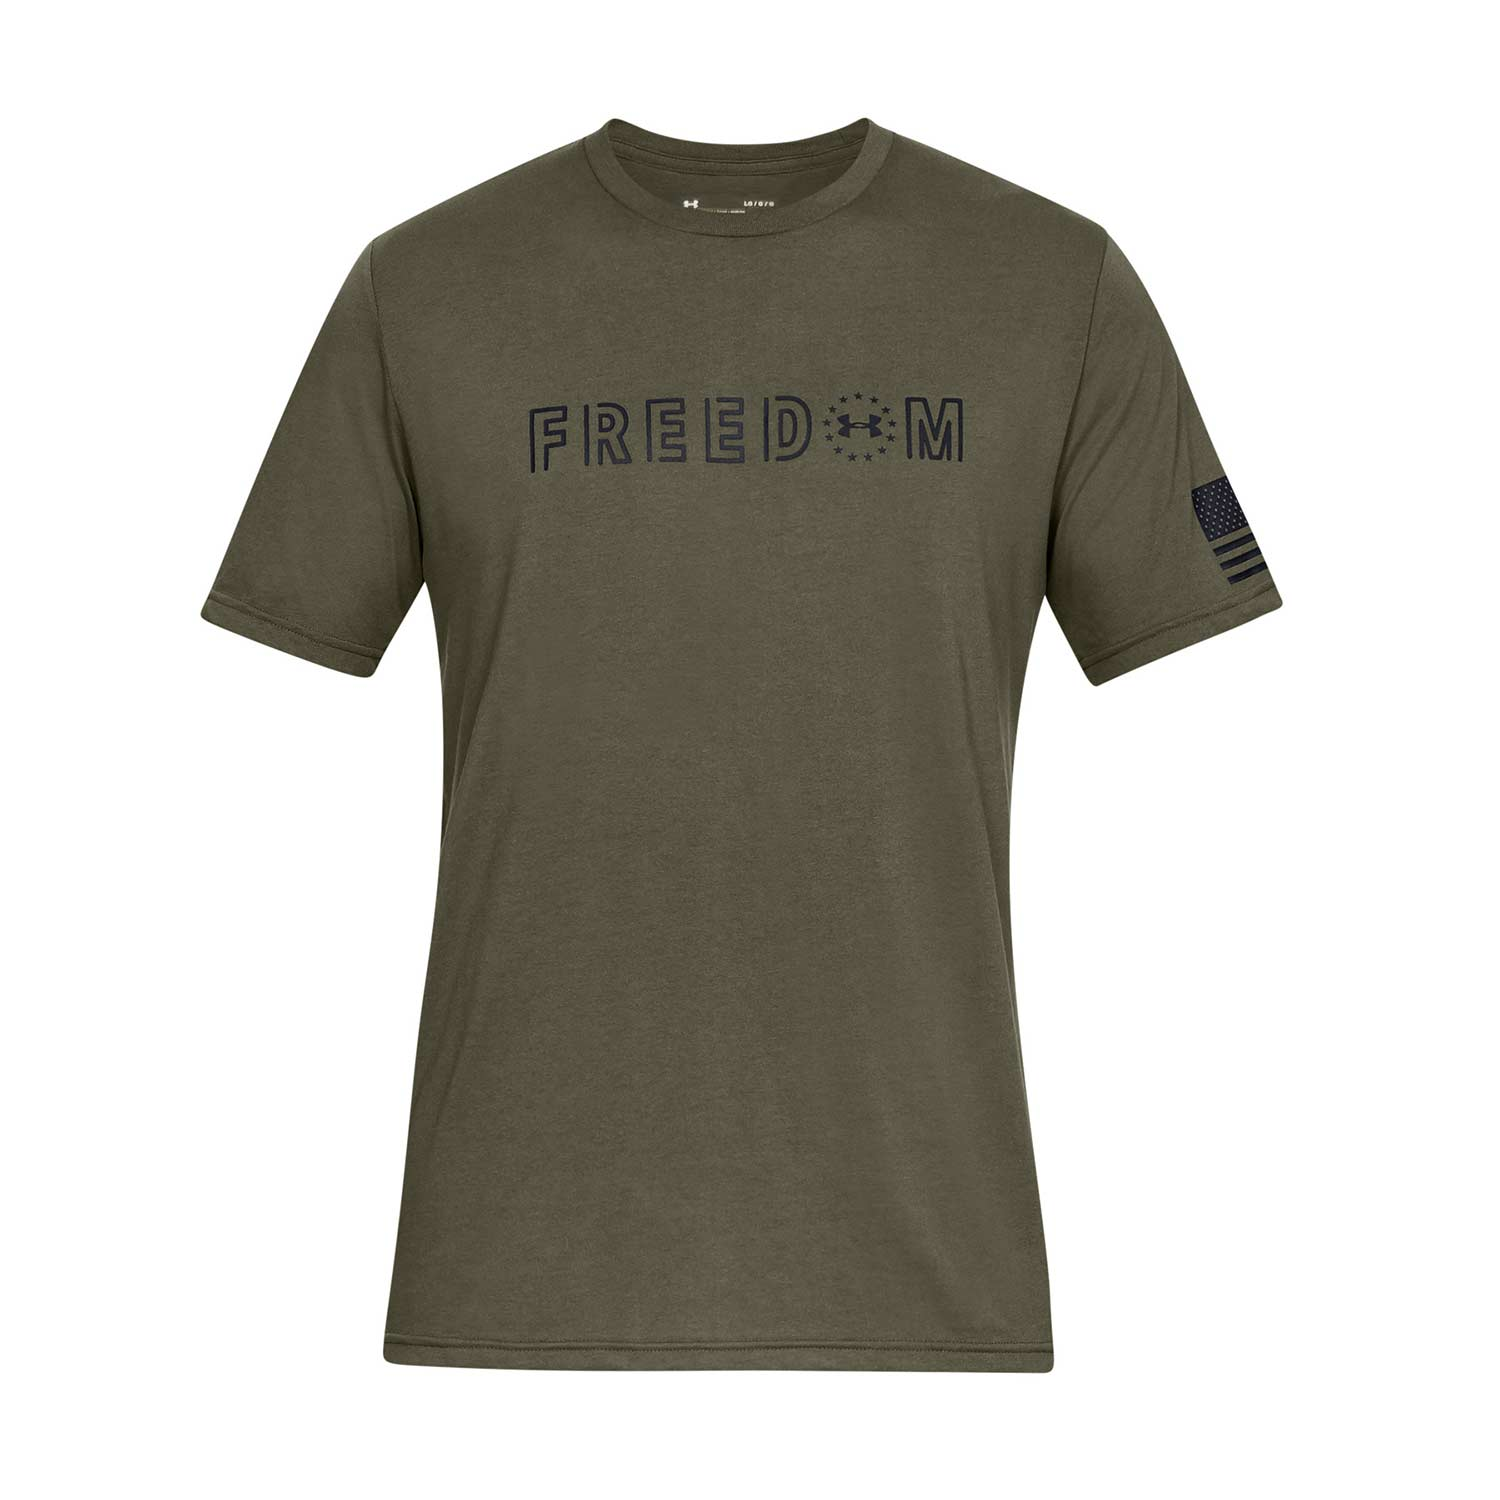 Under Armour Freedom Flag Bold T-Shirt